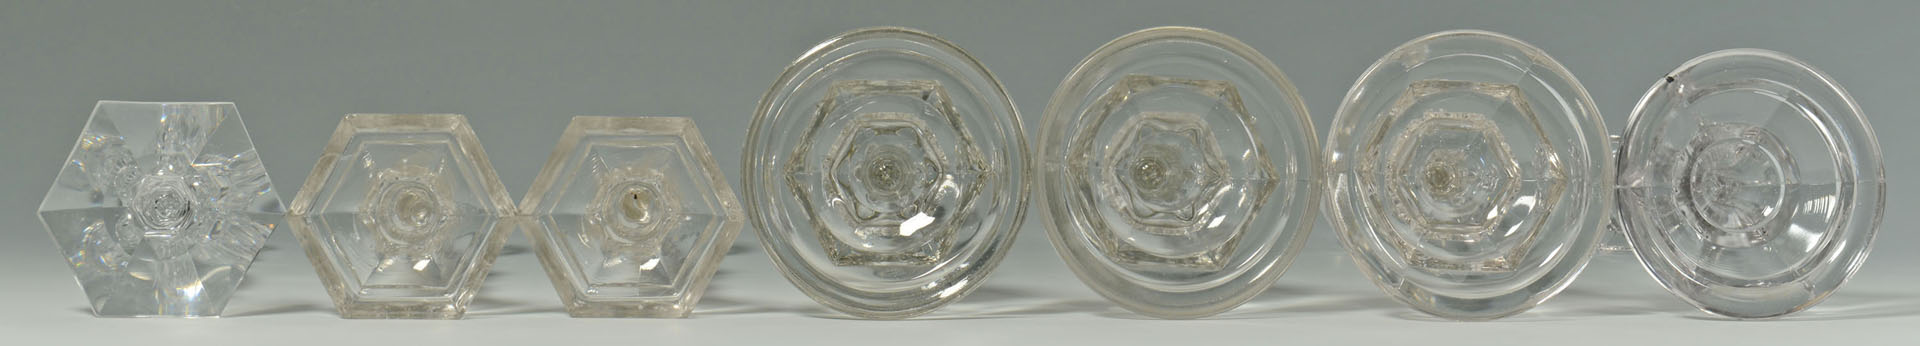 Lot 173: 10 Early Glass Candlesticks & Oil Peg Lamps